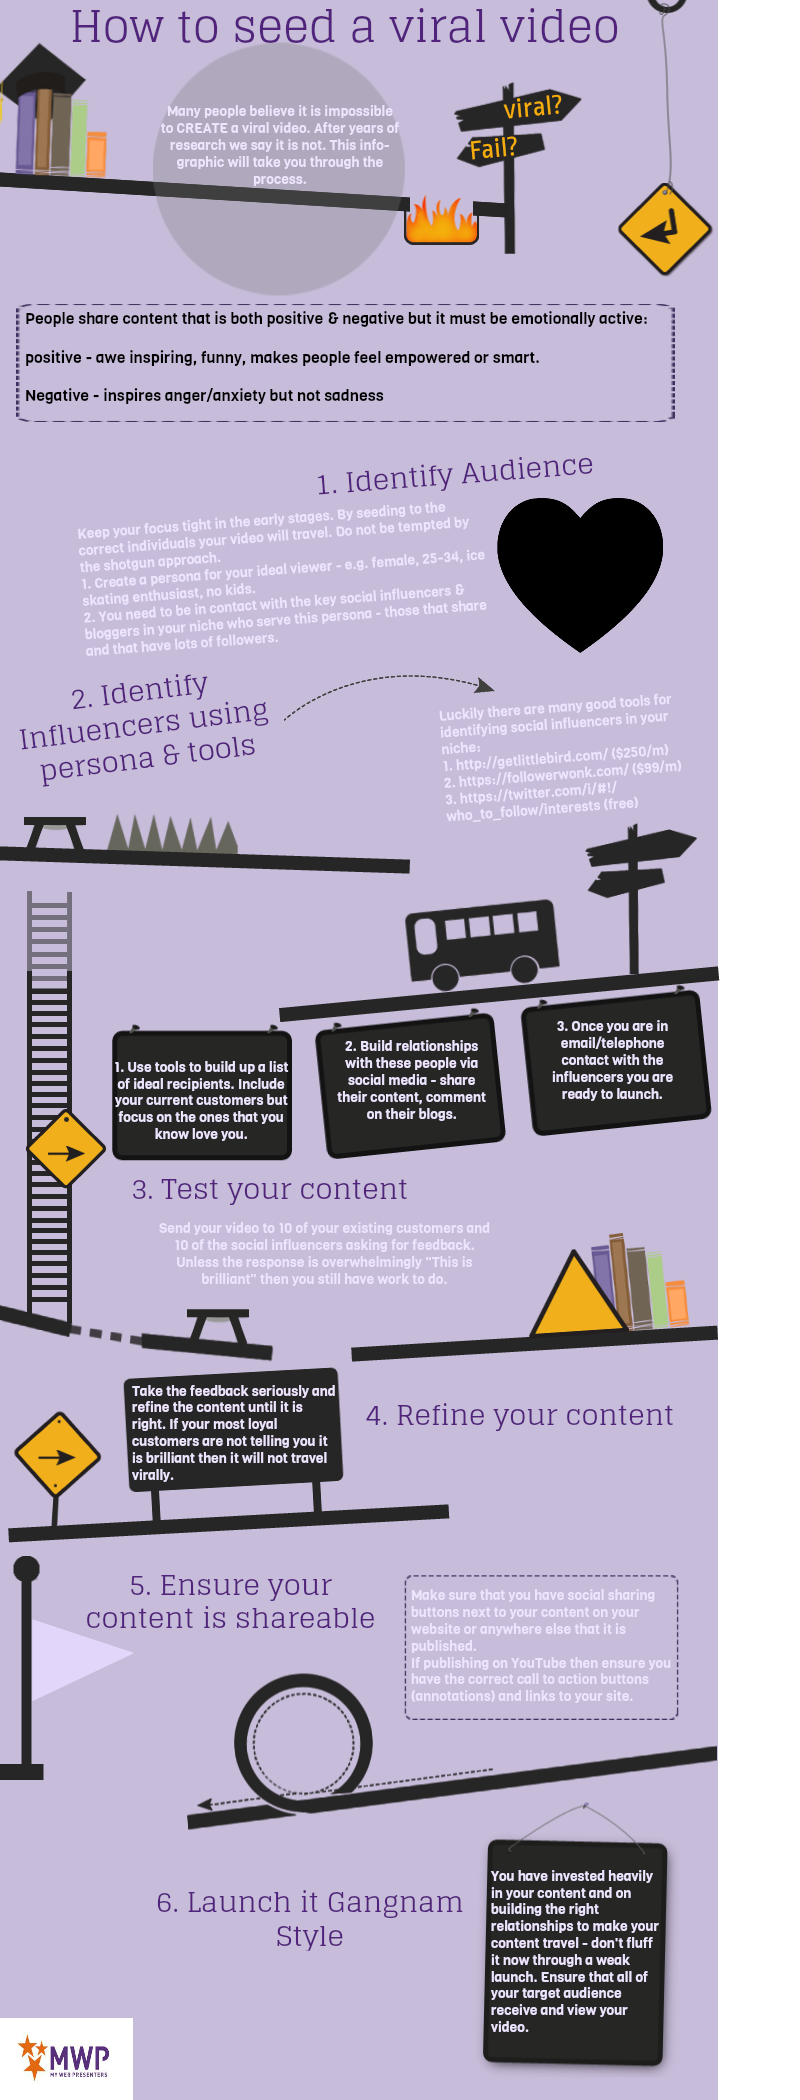 How to seed a viral video #infographic